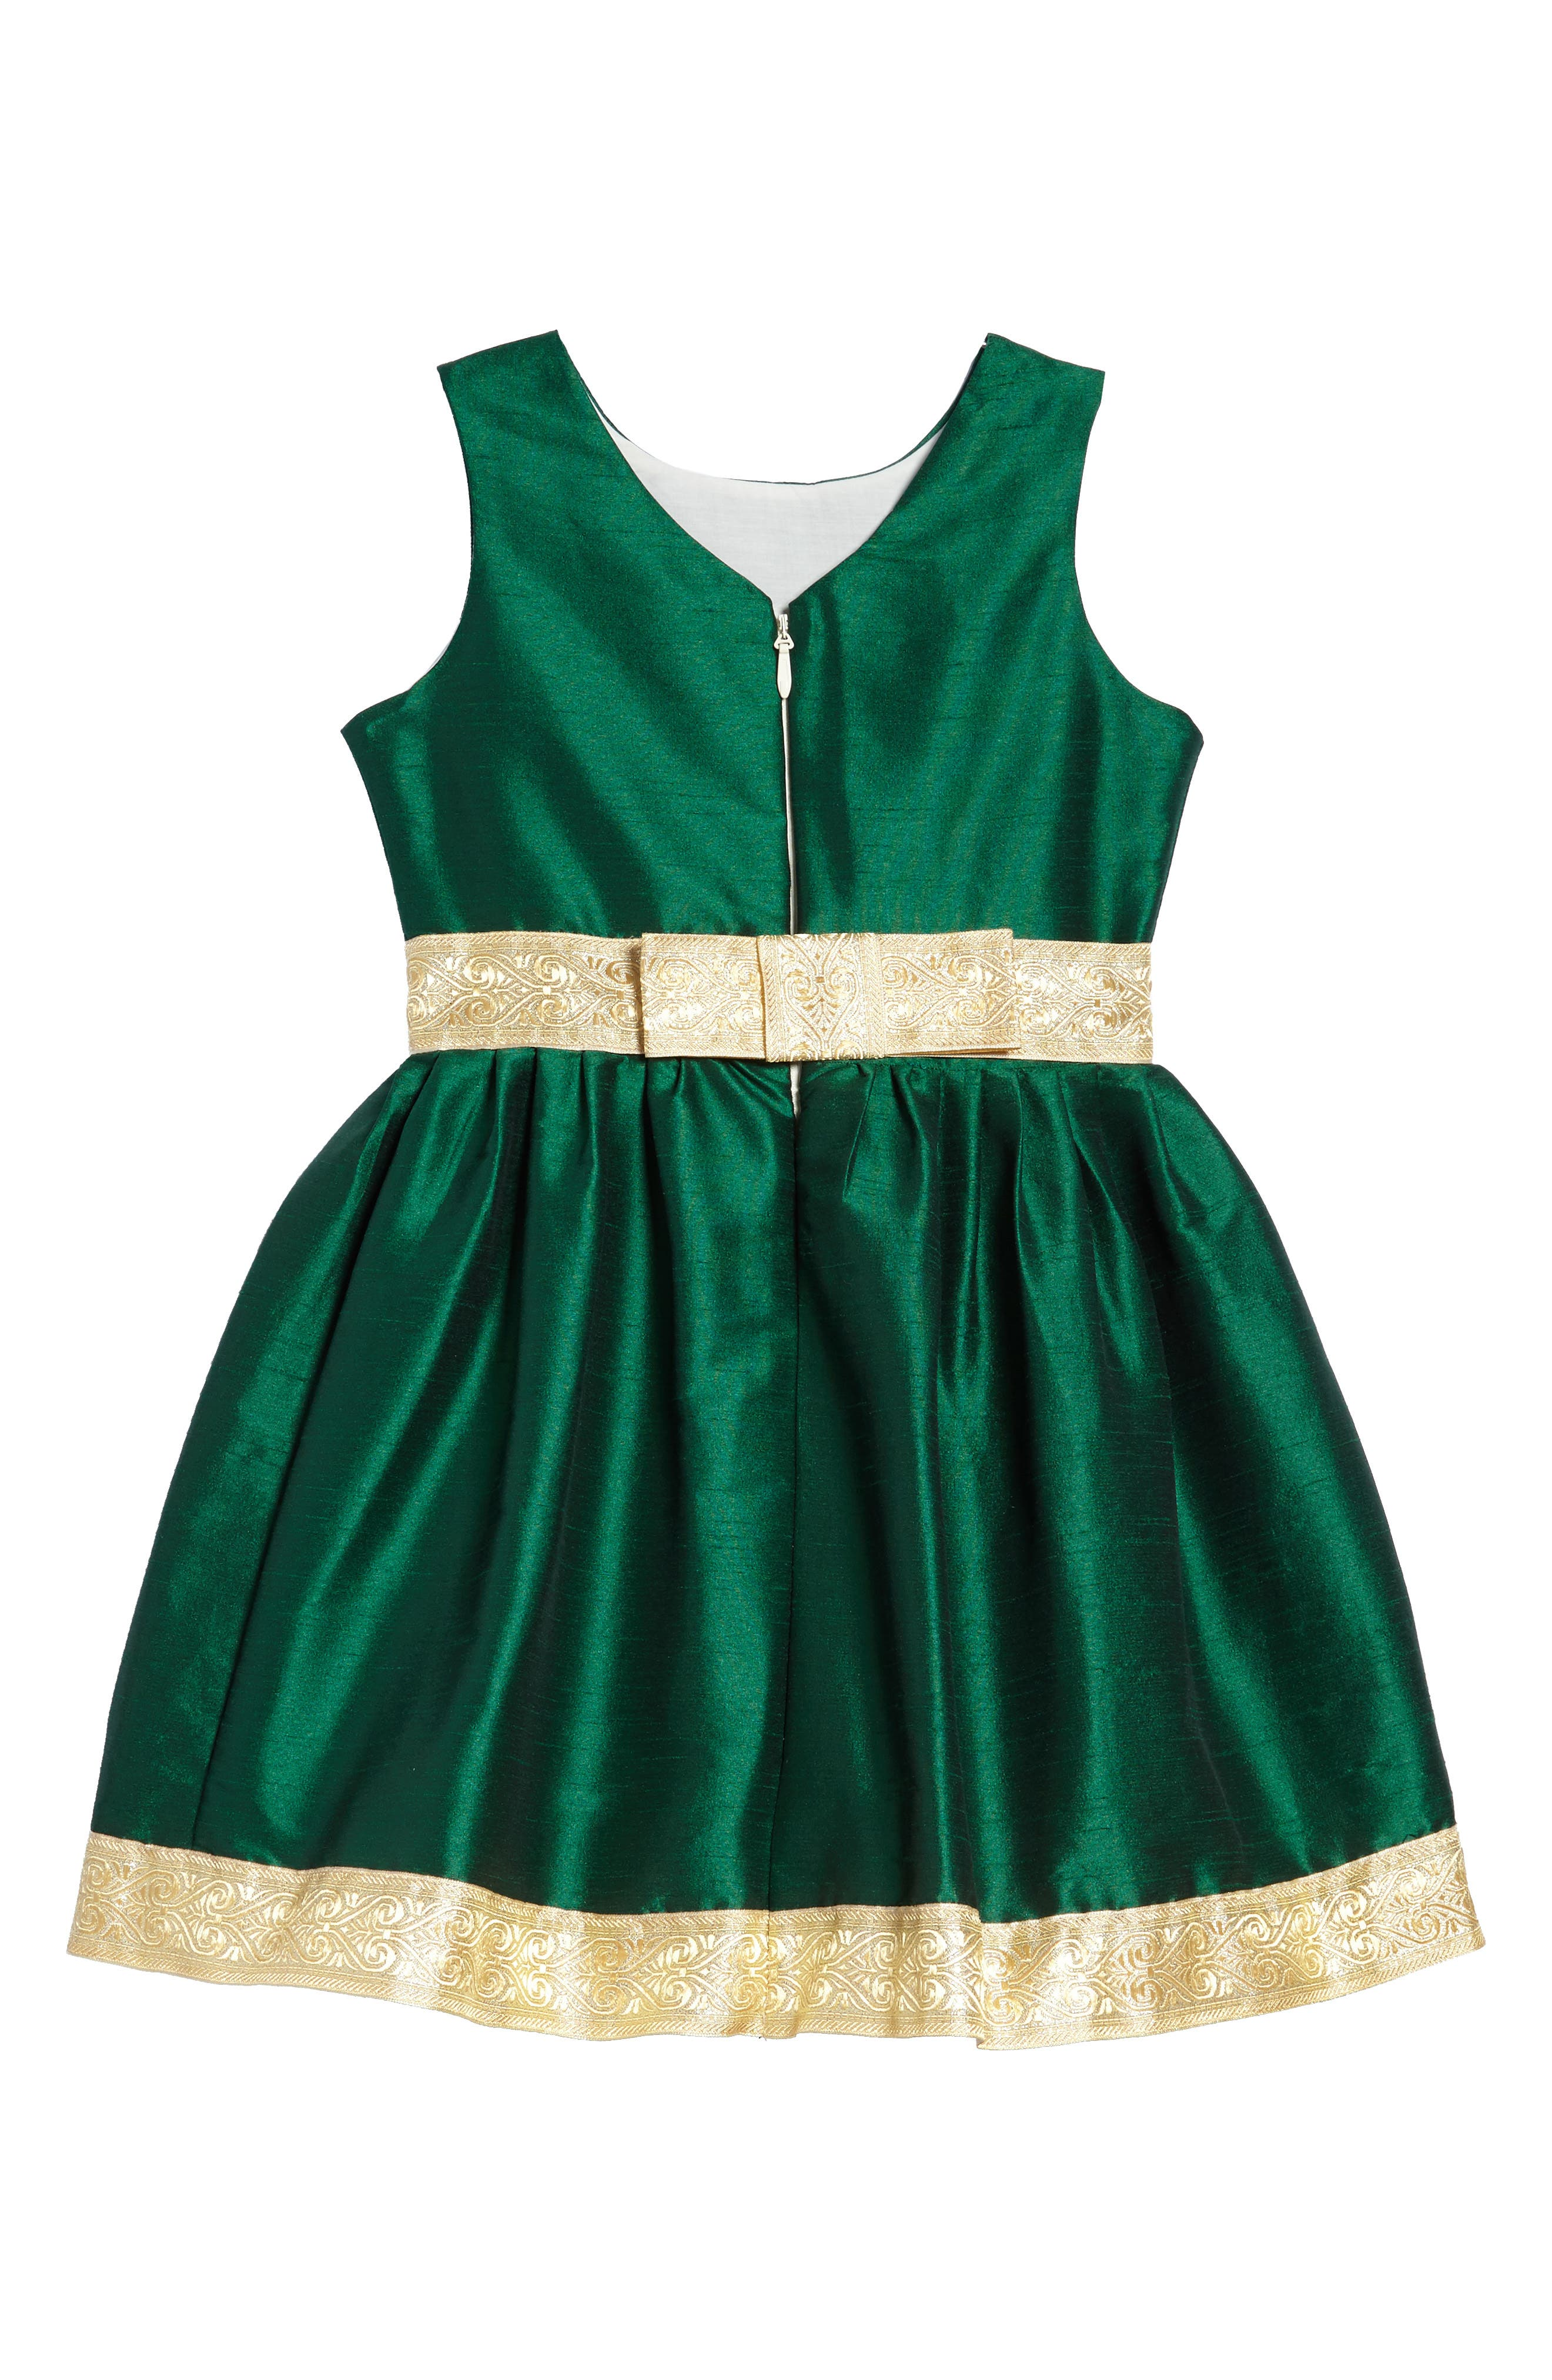 Fawn of Winter Dress,                             Alternate thumbnail 2, color,                             Green